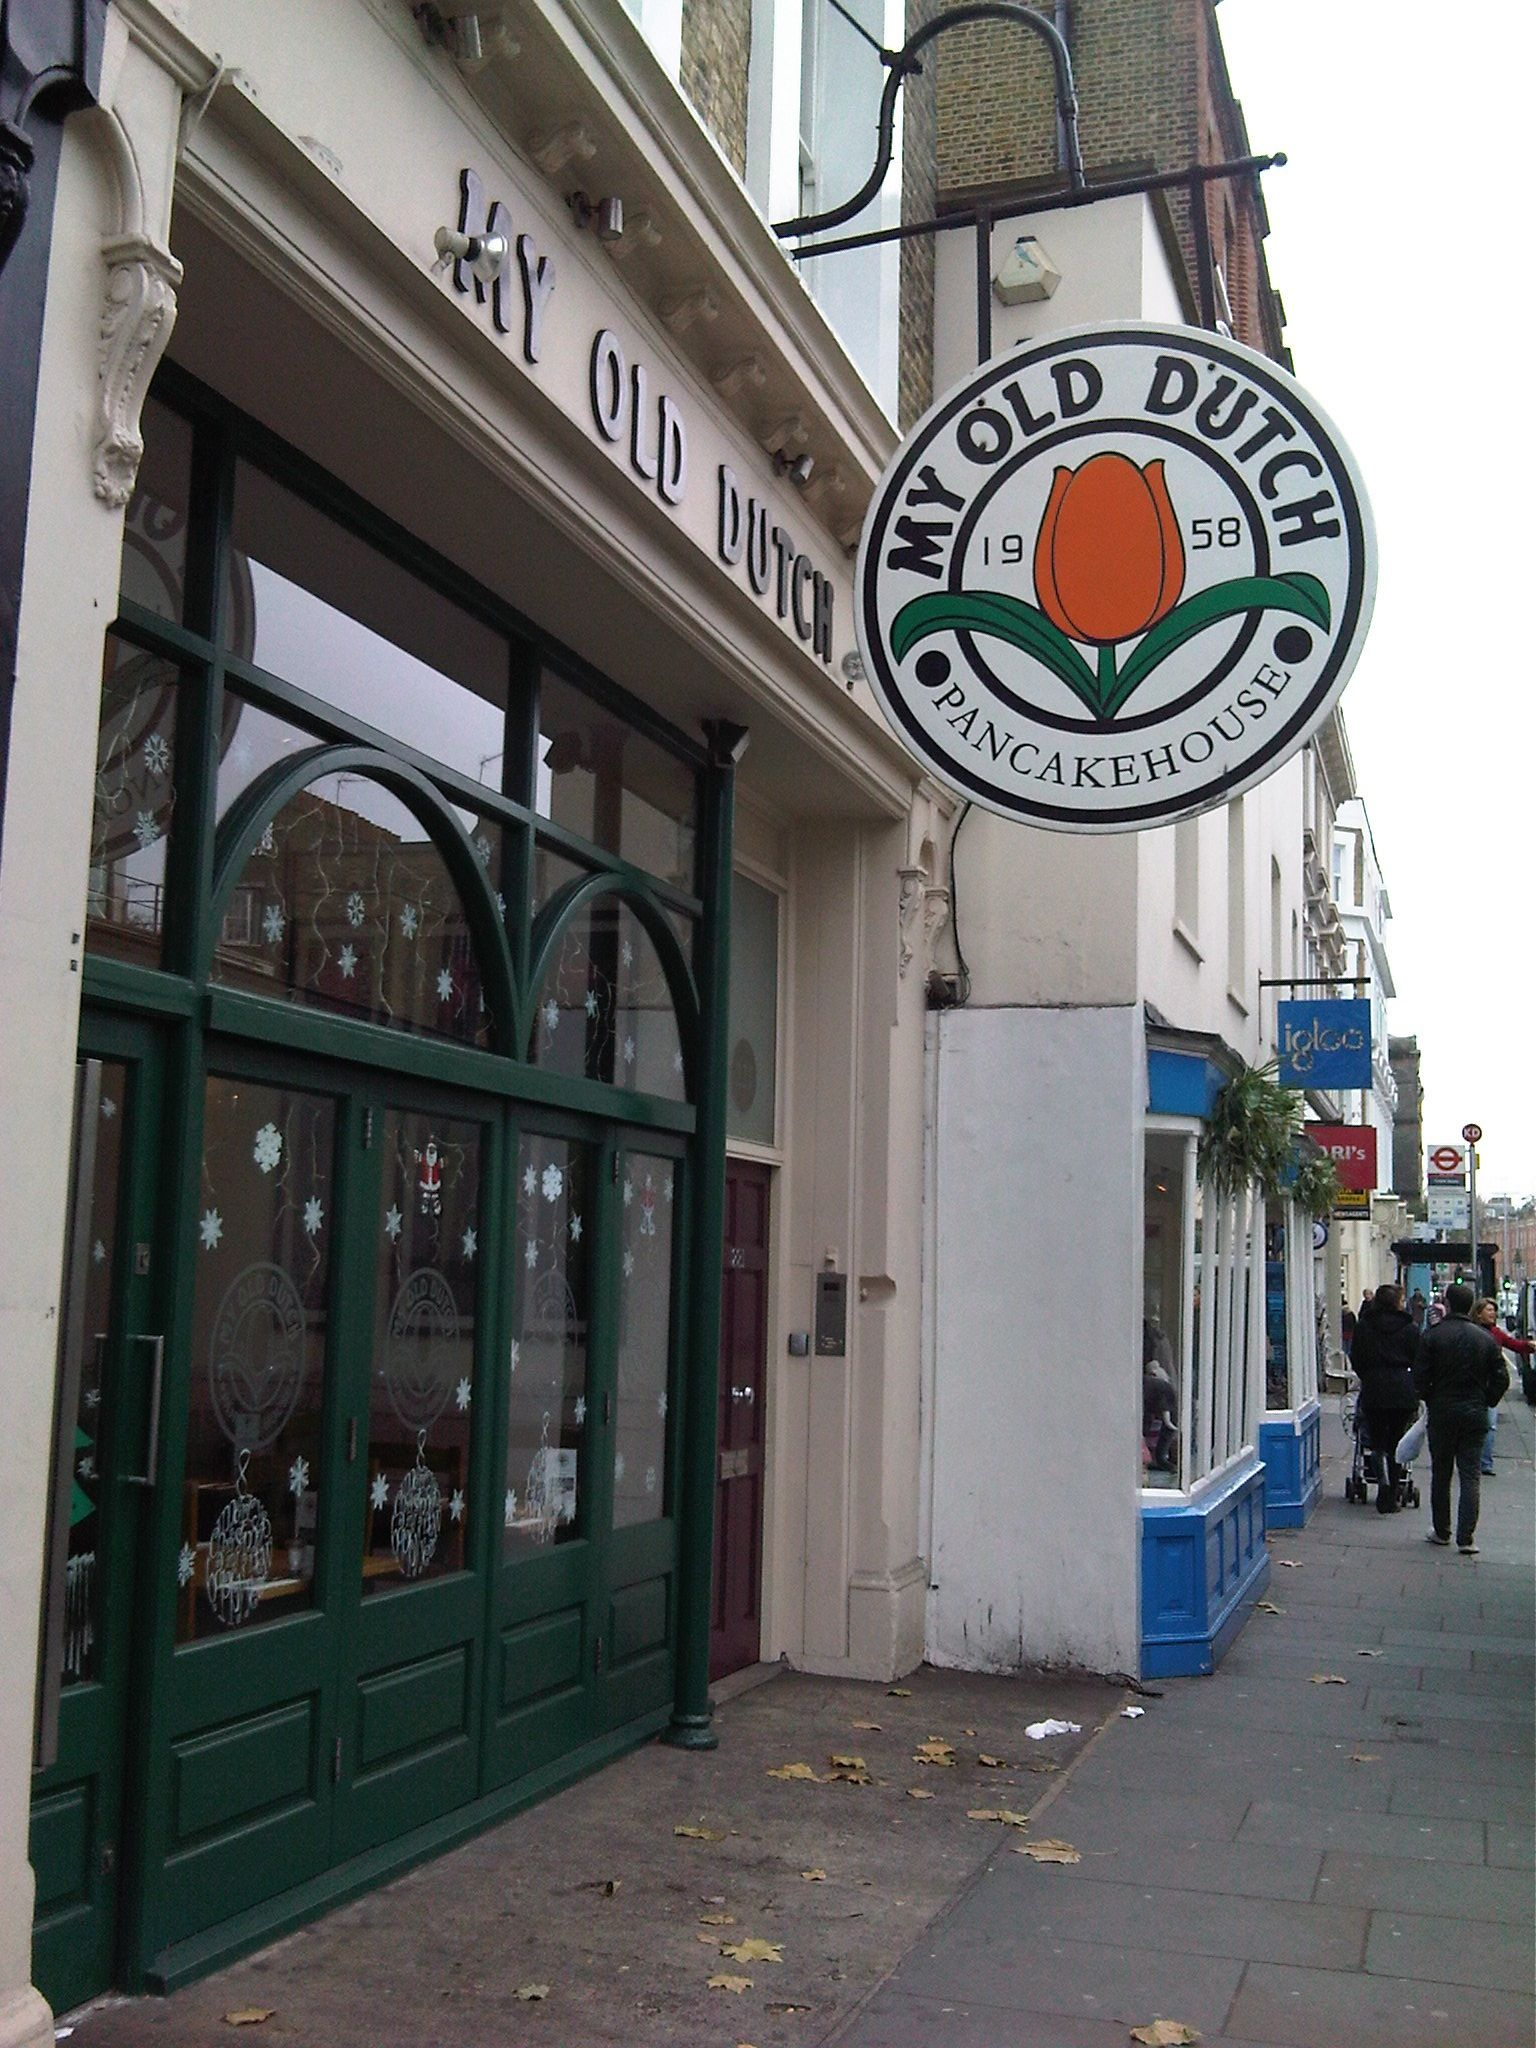 My Old Dutch pancake house in London. I have been wanting